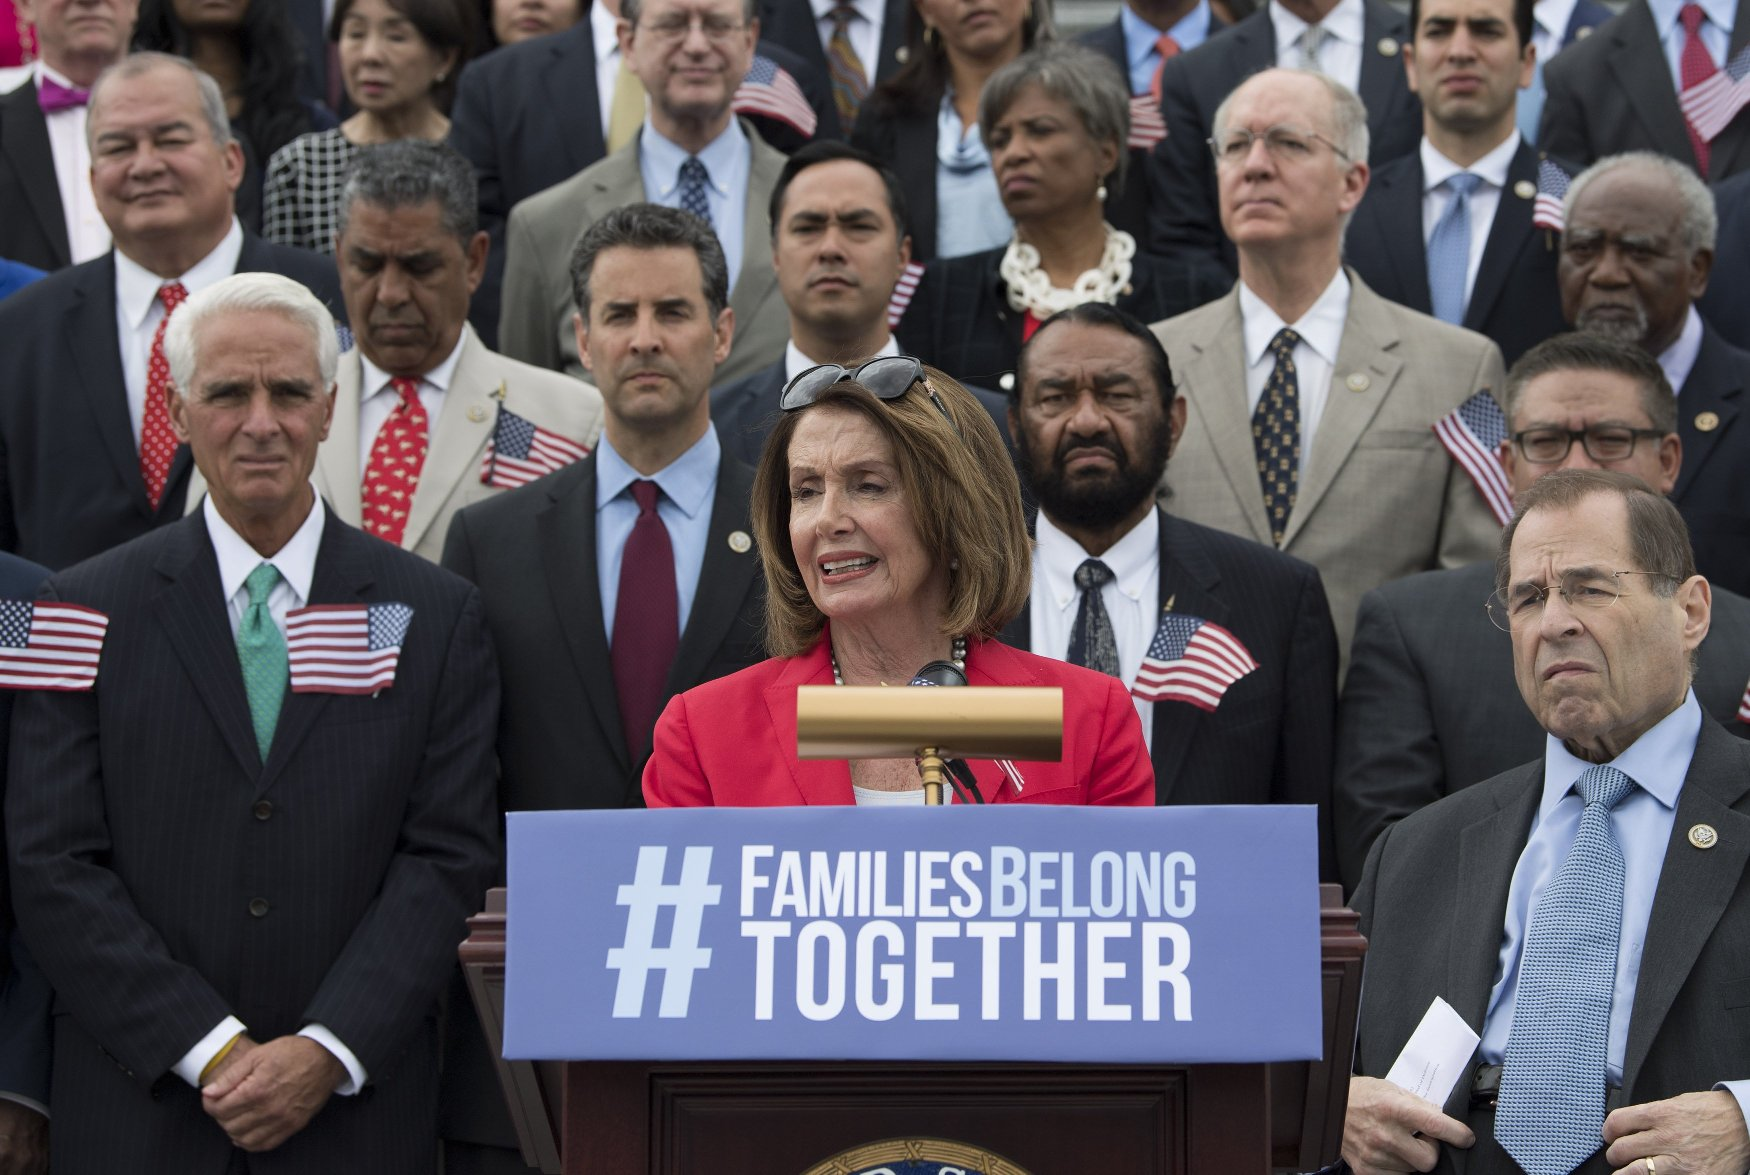 House Minority Leader Nancy Pelosi, D-Calif., joined by fellow House democrats, speaks at a press conference to introduce legislation to end family separation for those detained for crossing the border illegally, at the U.S. Capitol Building in Washington, D.C. on June 20, 2018. Photo by /UPI, Image: 375520203, License: Rights-managed, Restrictions: , Model Release: no, Credit line: Profimedia, UPI